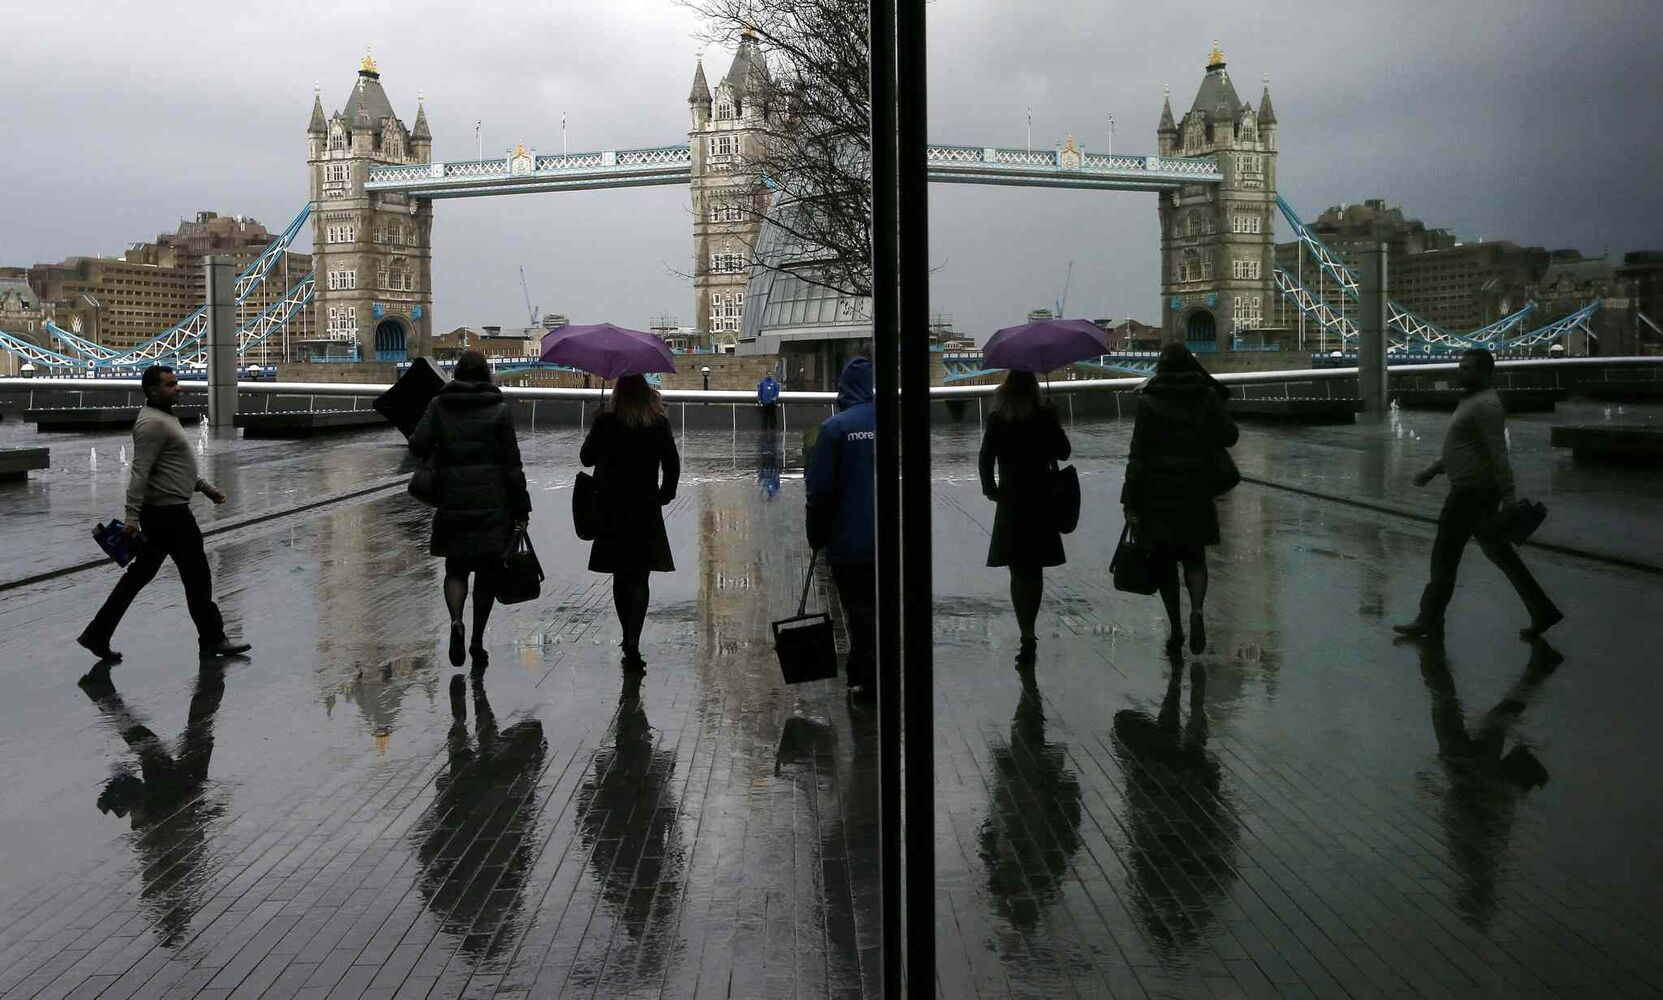 Pedestrians are reflected in a window as they walk through rain near Tower Bridge in London, Tuesday. At least three people have died in a wave of stormy weather that has battered Britain since last week, including a man killed when his mobility scooter fell into a river in Oxford, southern England.  (Kirsty Wigglesworth / The Associated Press)